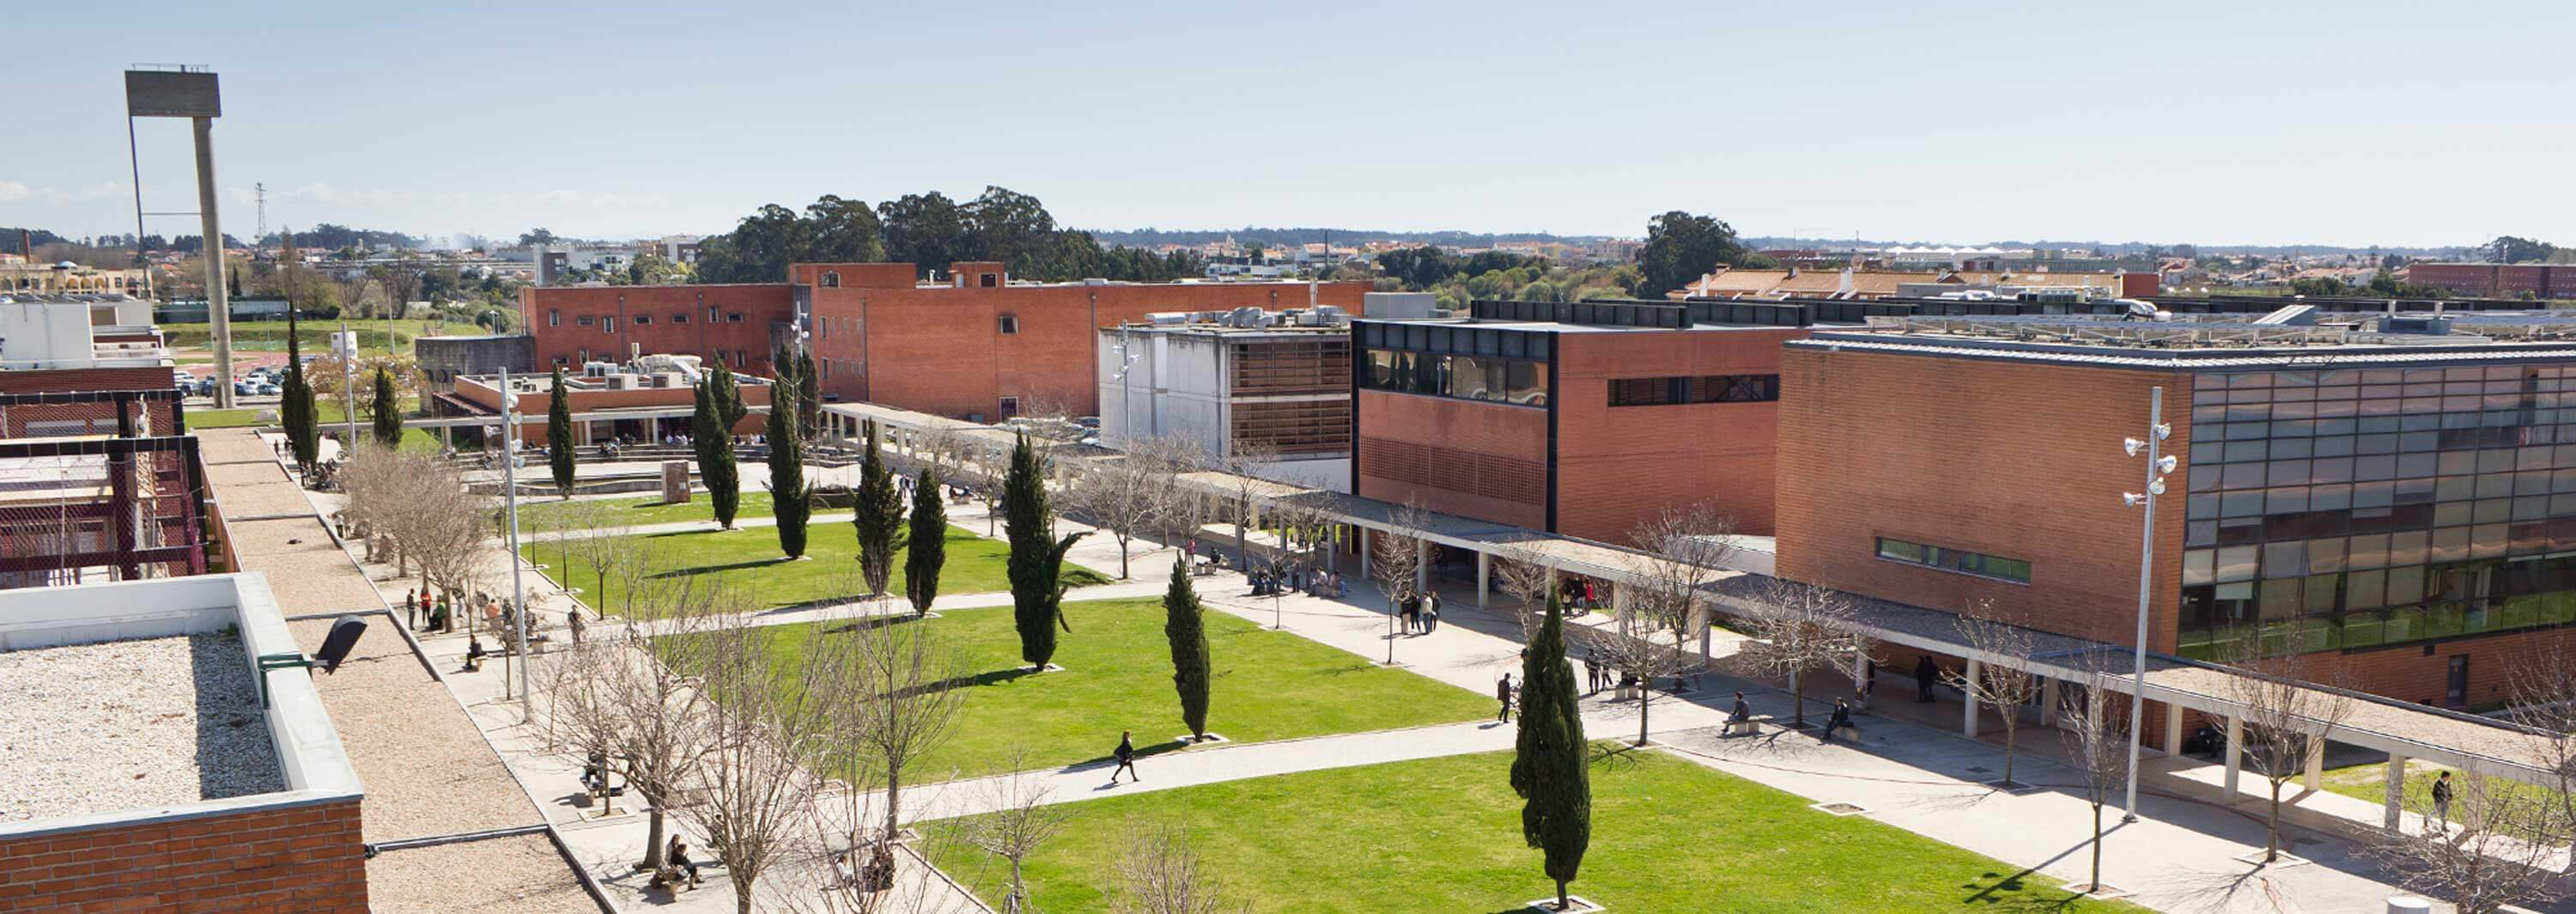 The University of Aveiro has a vacancy for an Auxiliary Researcher